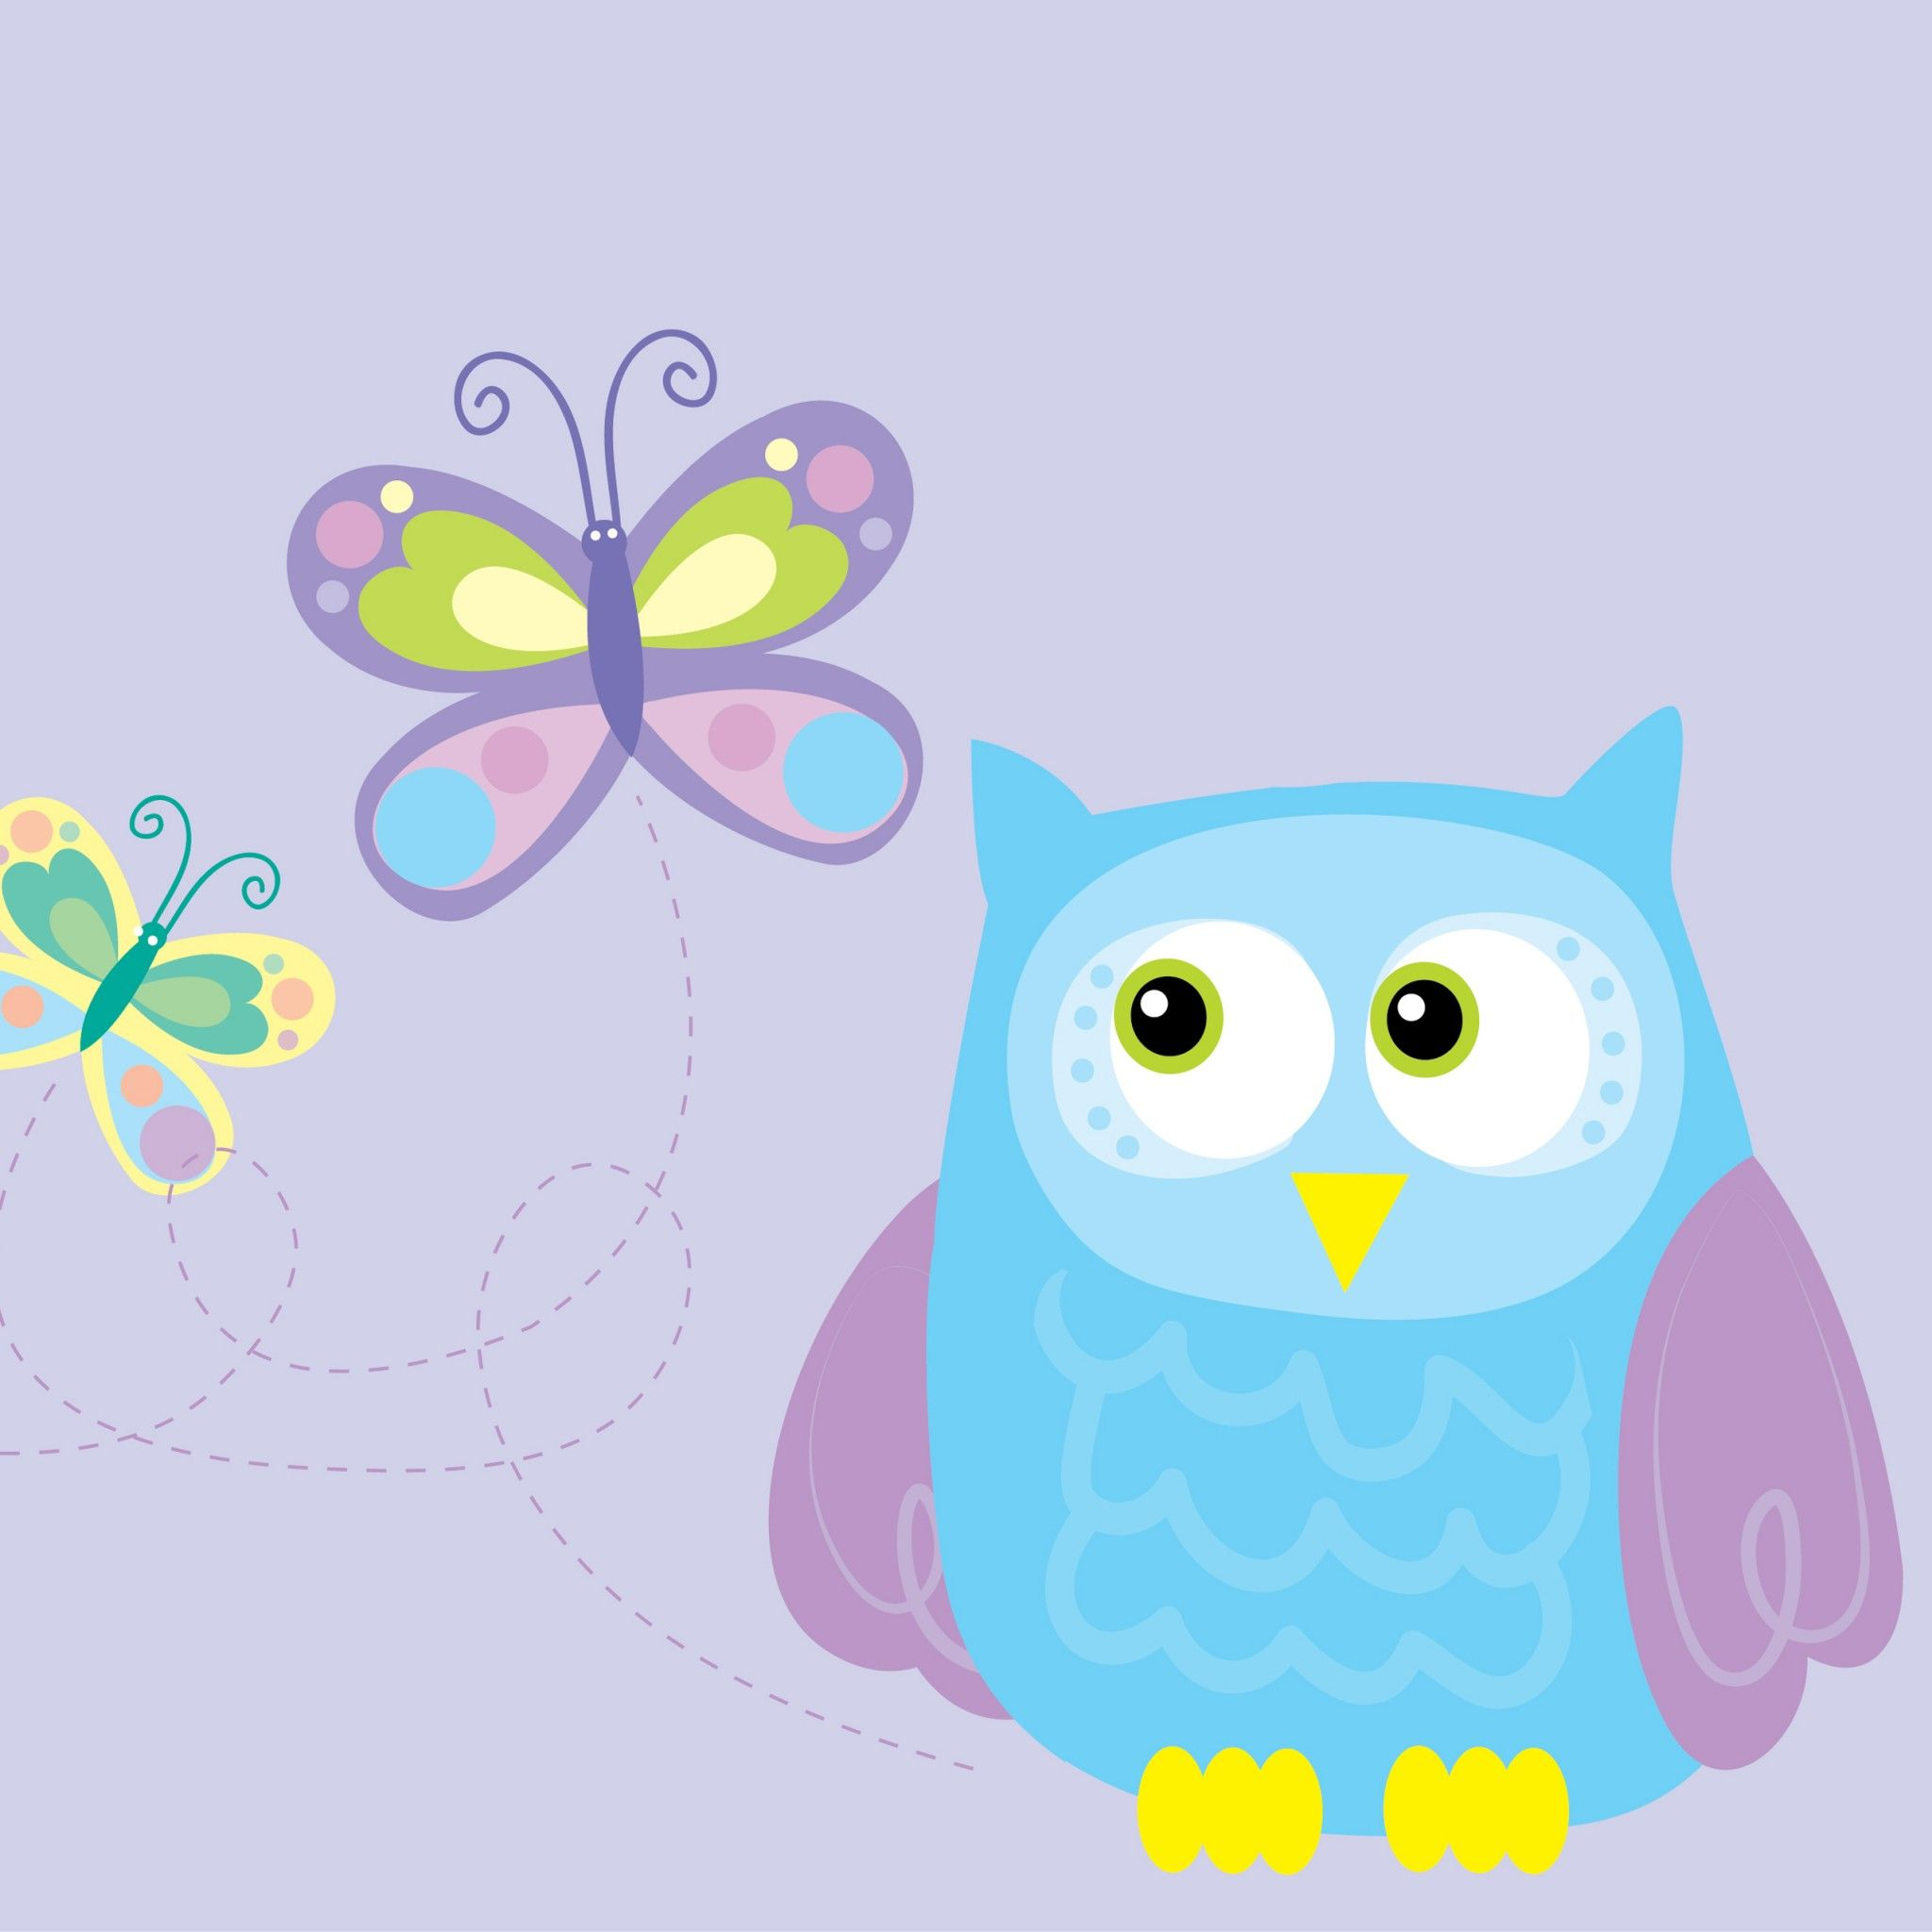 Tiffany owl tap to see more cute cartoon wallpaper mobile9 owl voltagebd Gallery